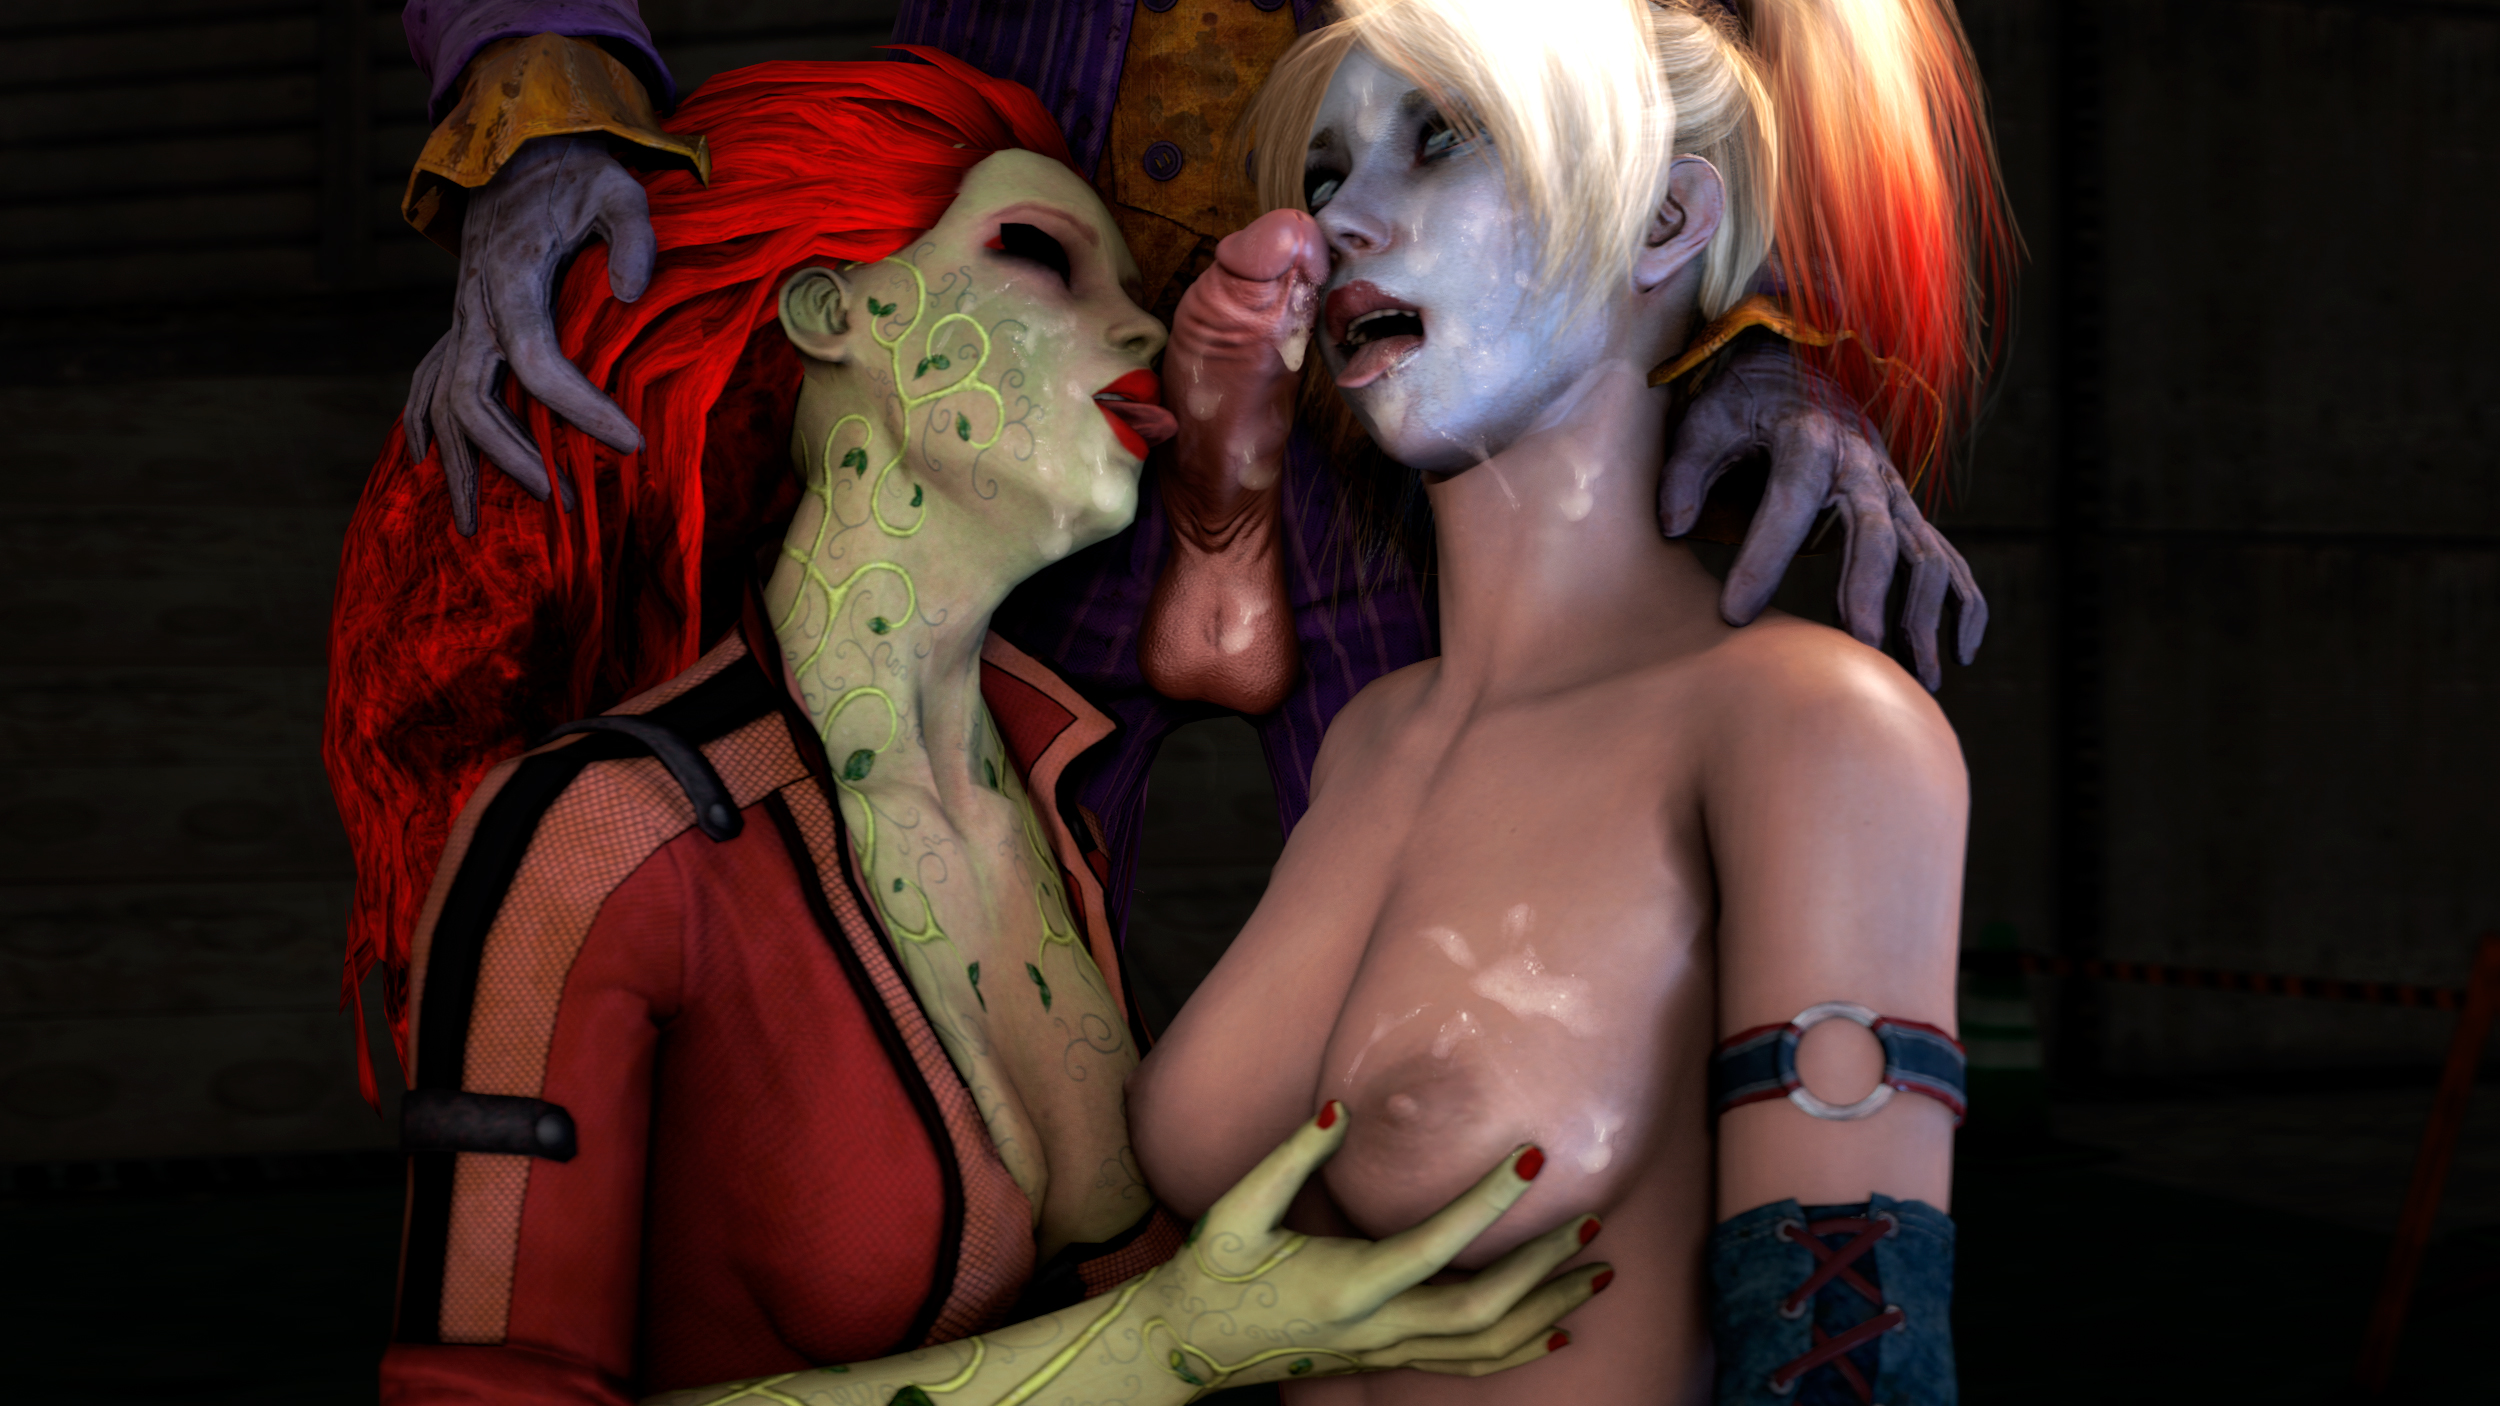 Internet Rule On Animated Porn harley quinn rule porn animated - porn galleries